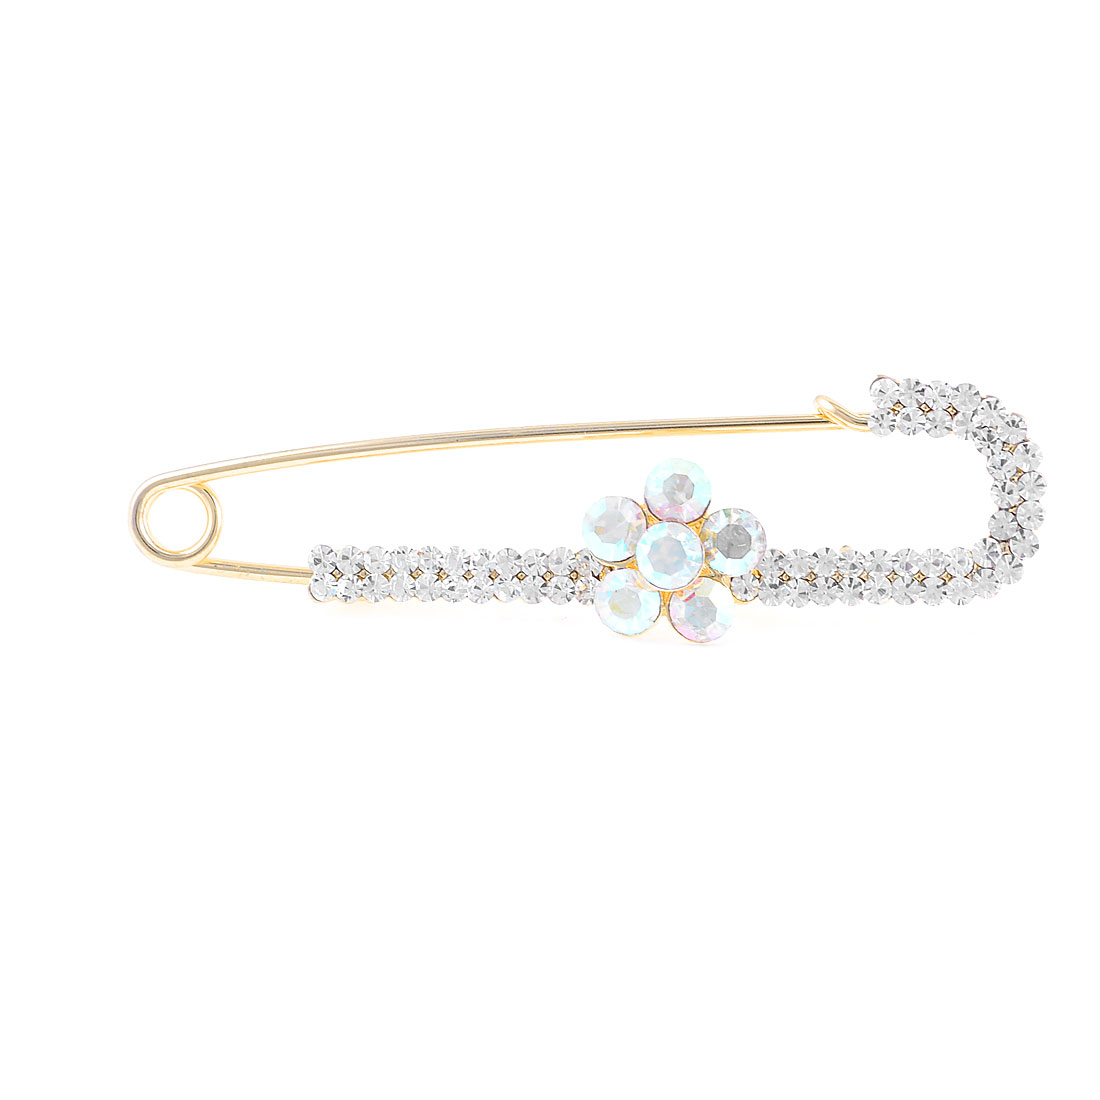 Bling Bling Rhinestone Flower Decor Safety Pin Brooch Broach Gold Tone